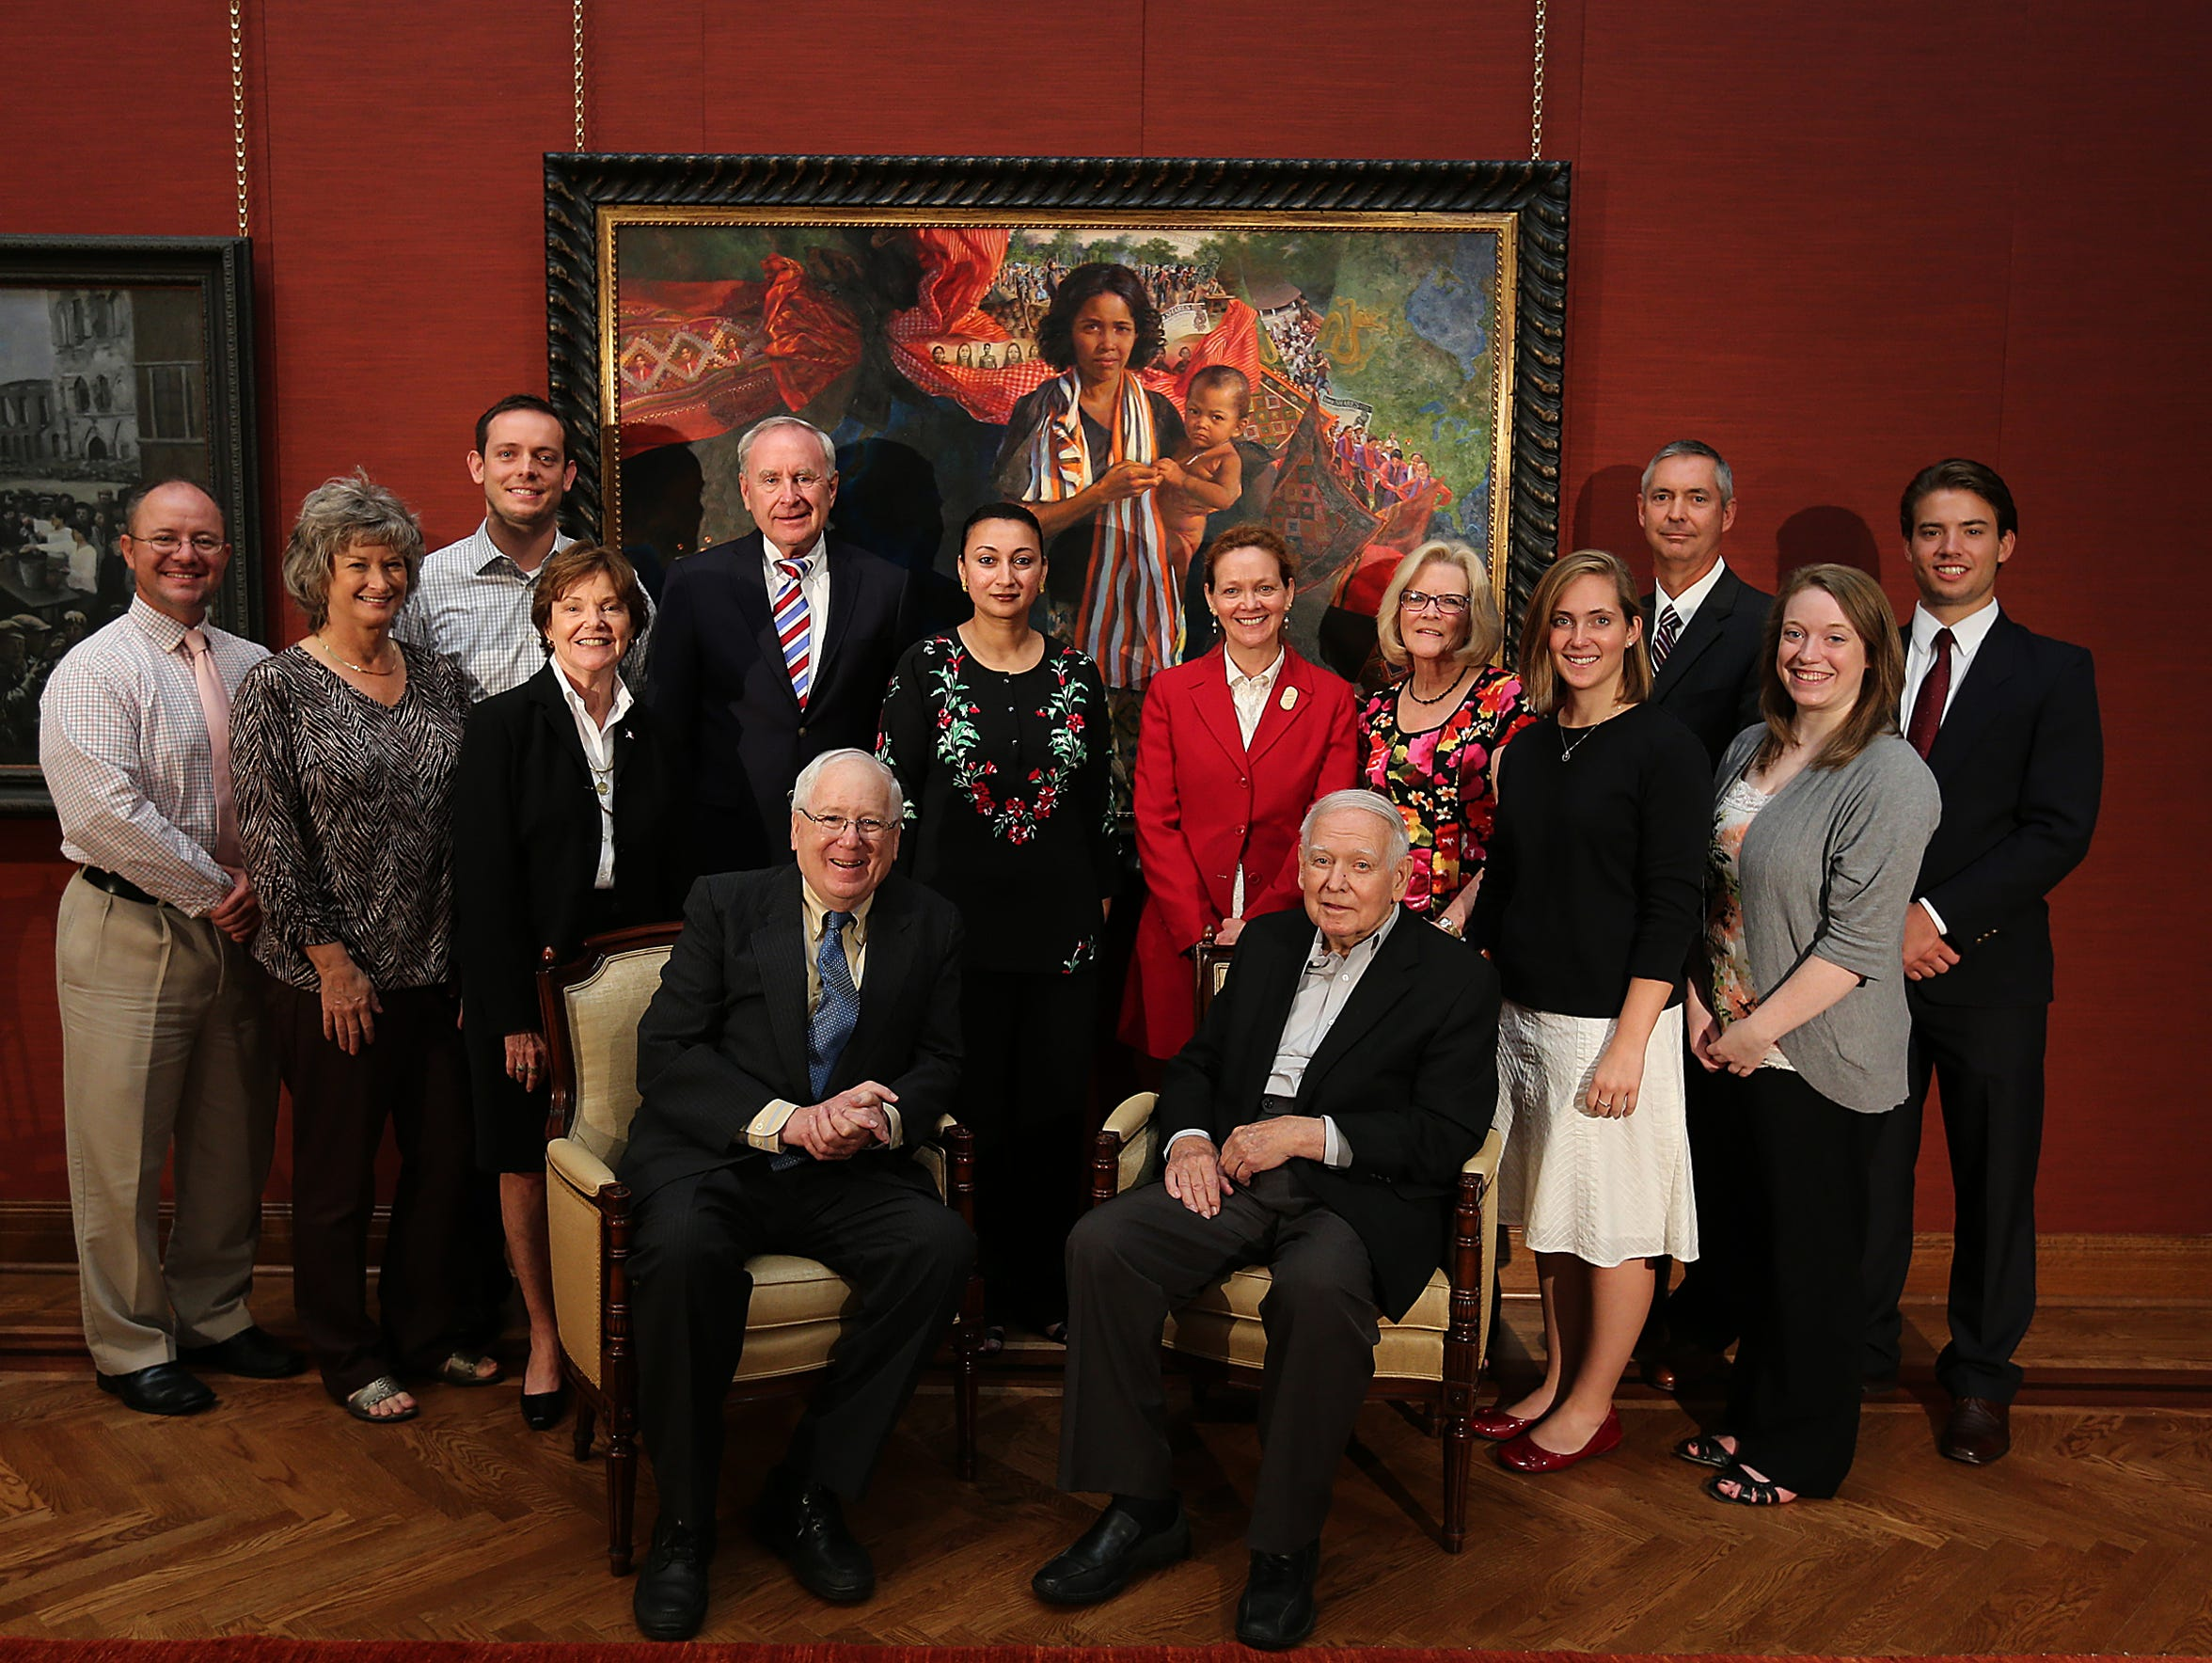 Former Iowa Gov. Robert Ray (seated, right) was honored